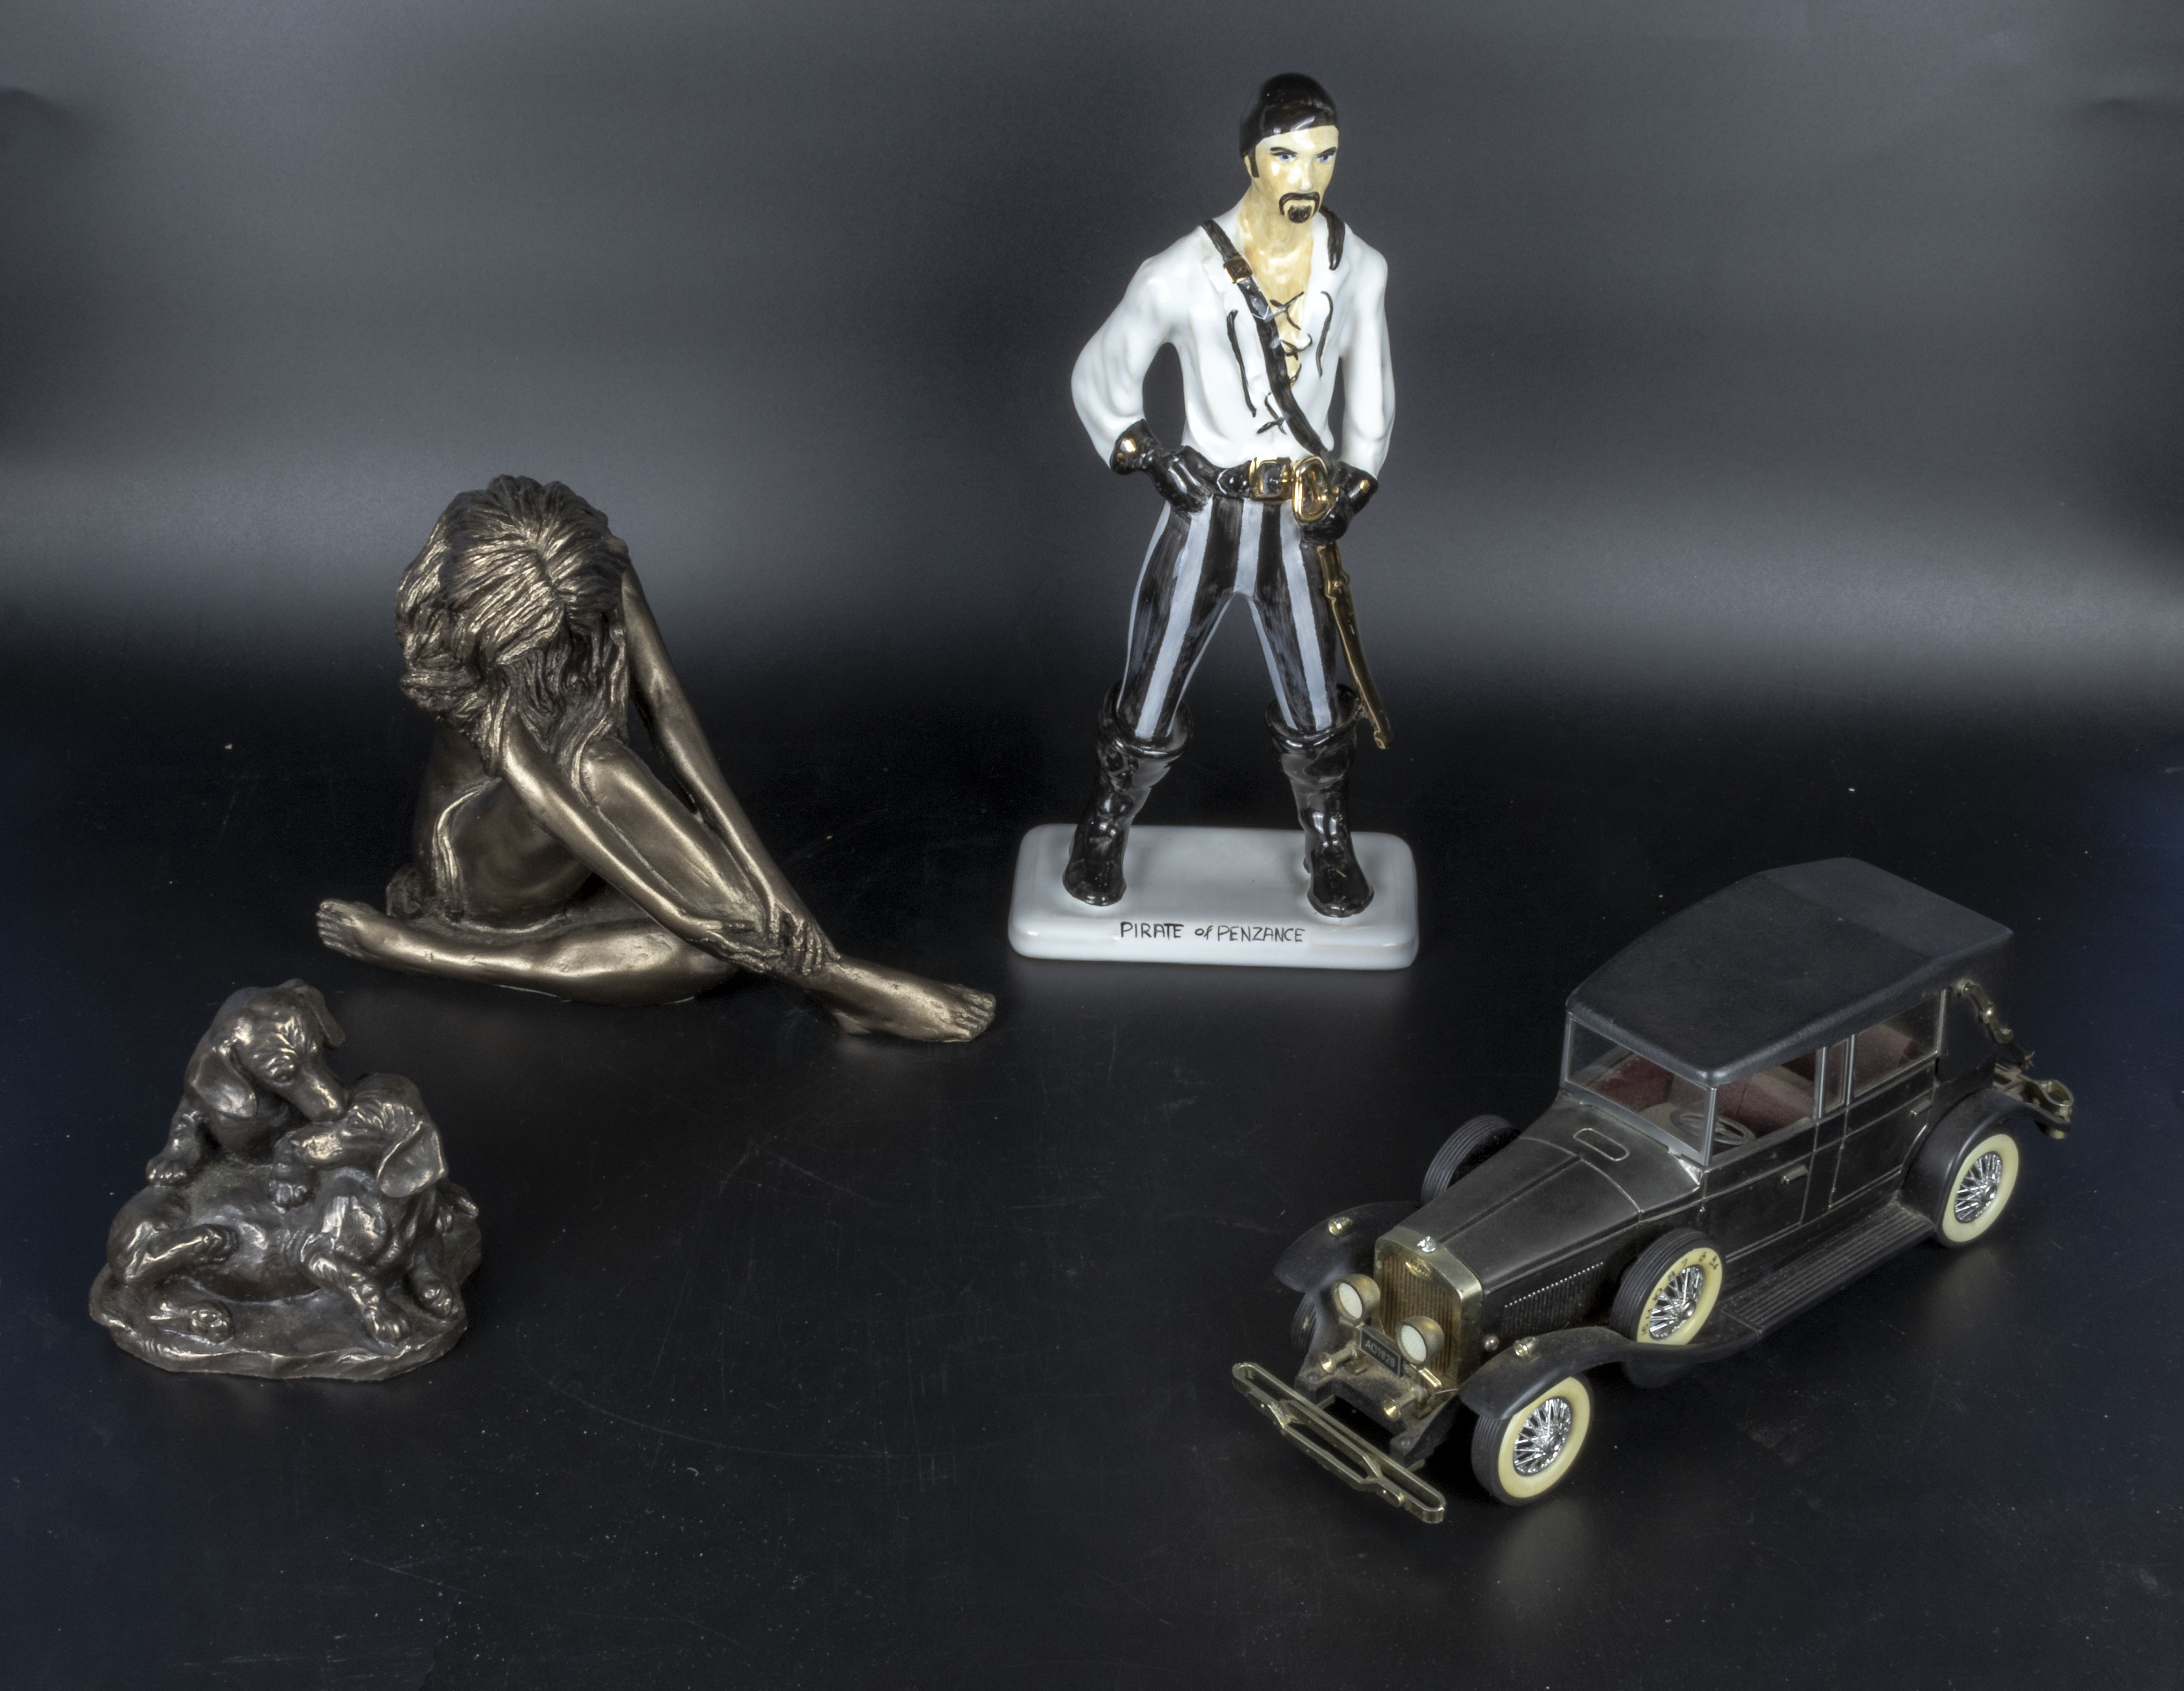 Lot 4 - Three figures and a model car